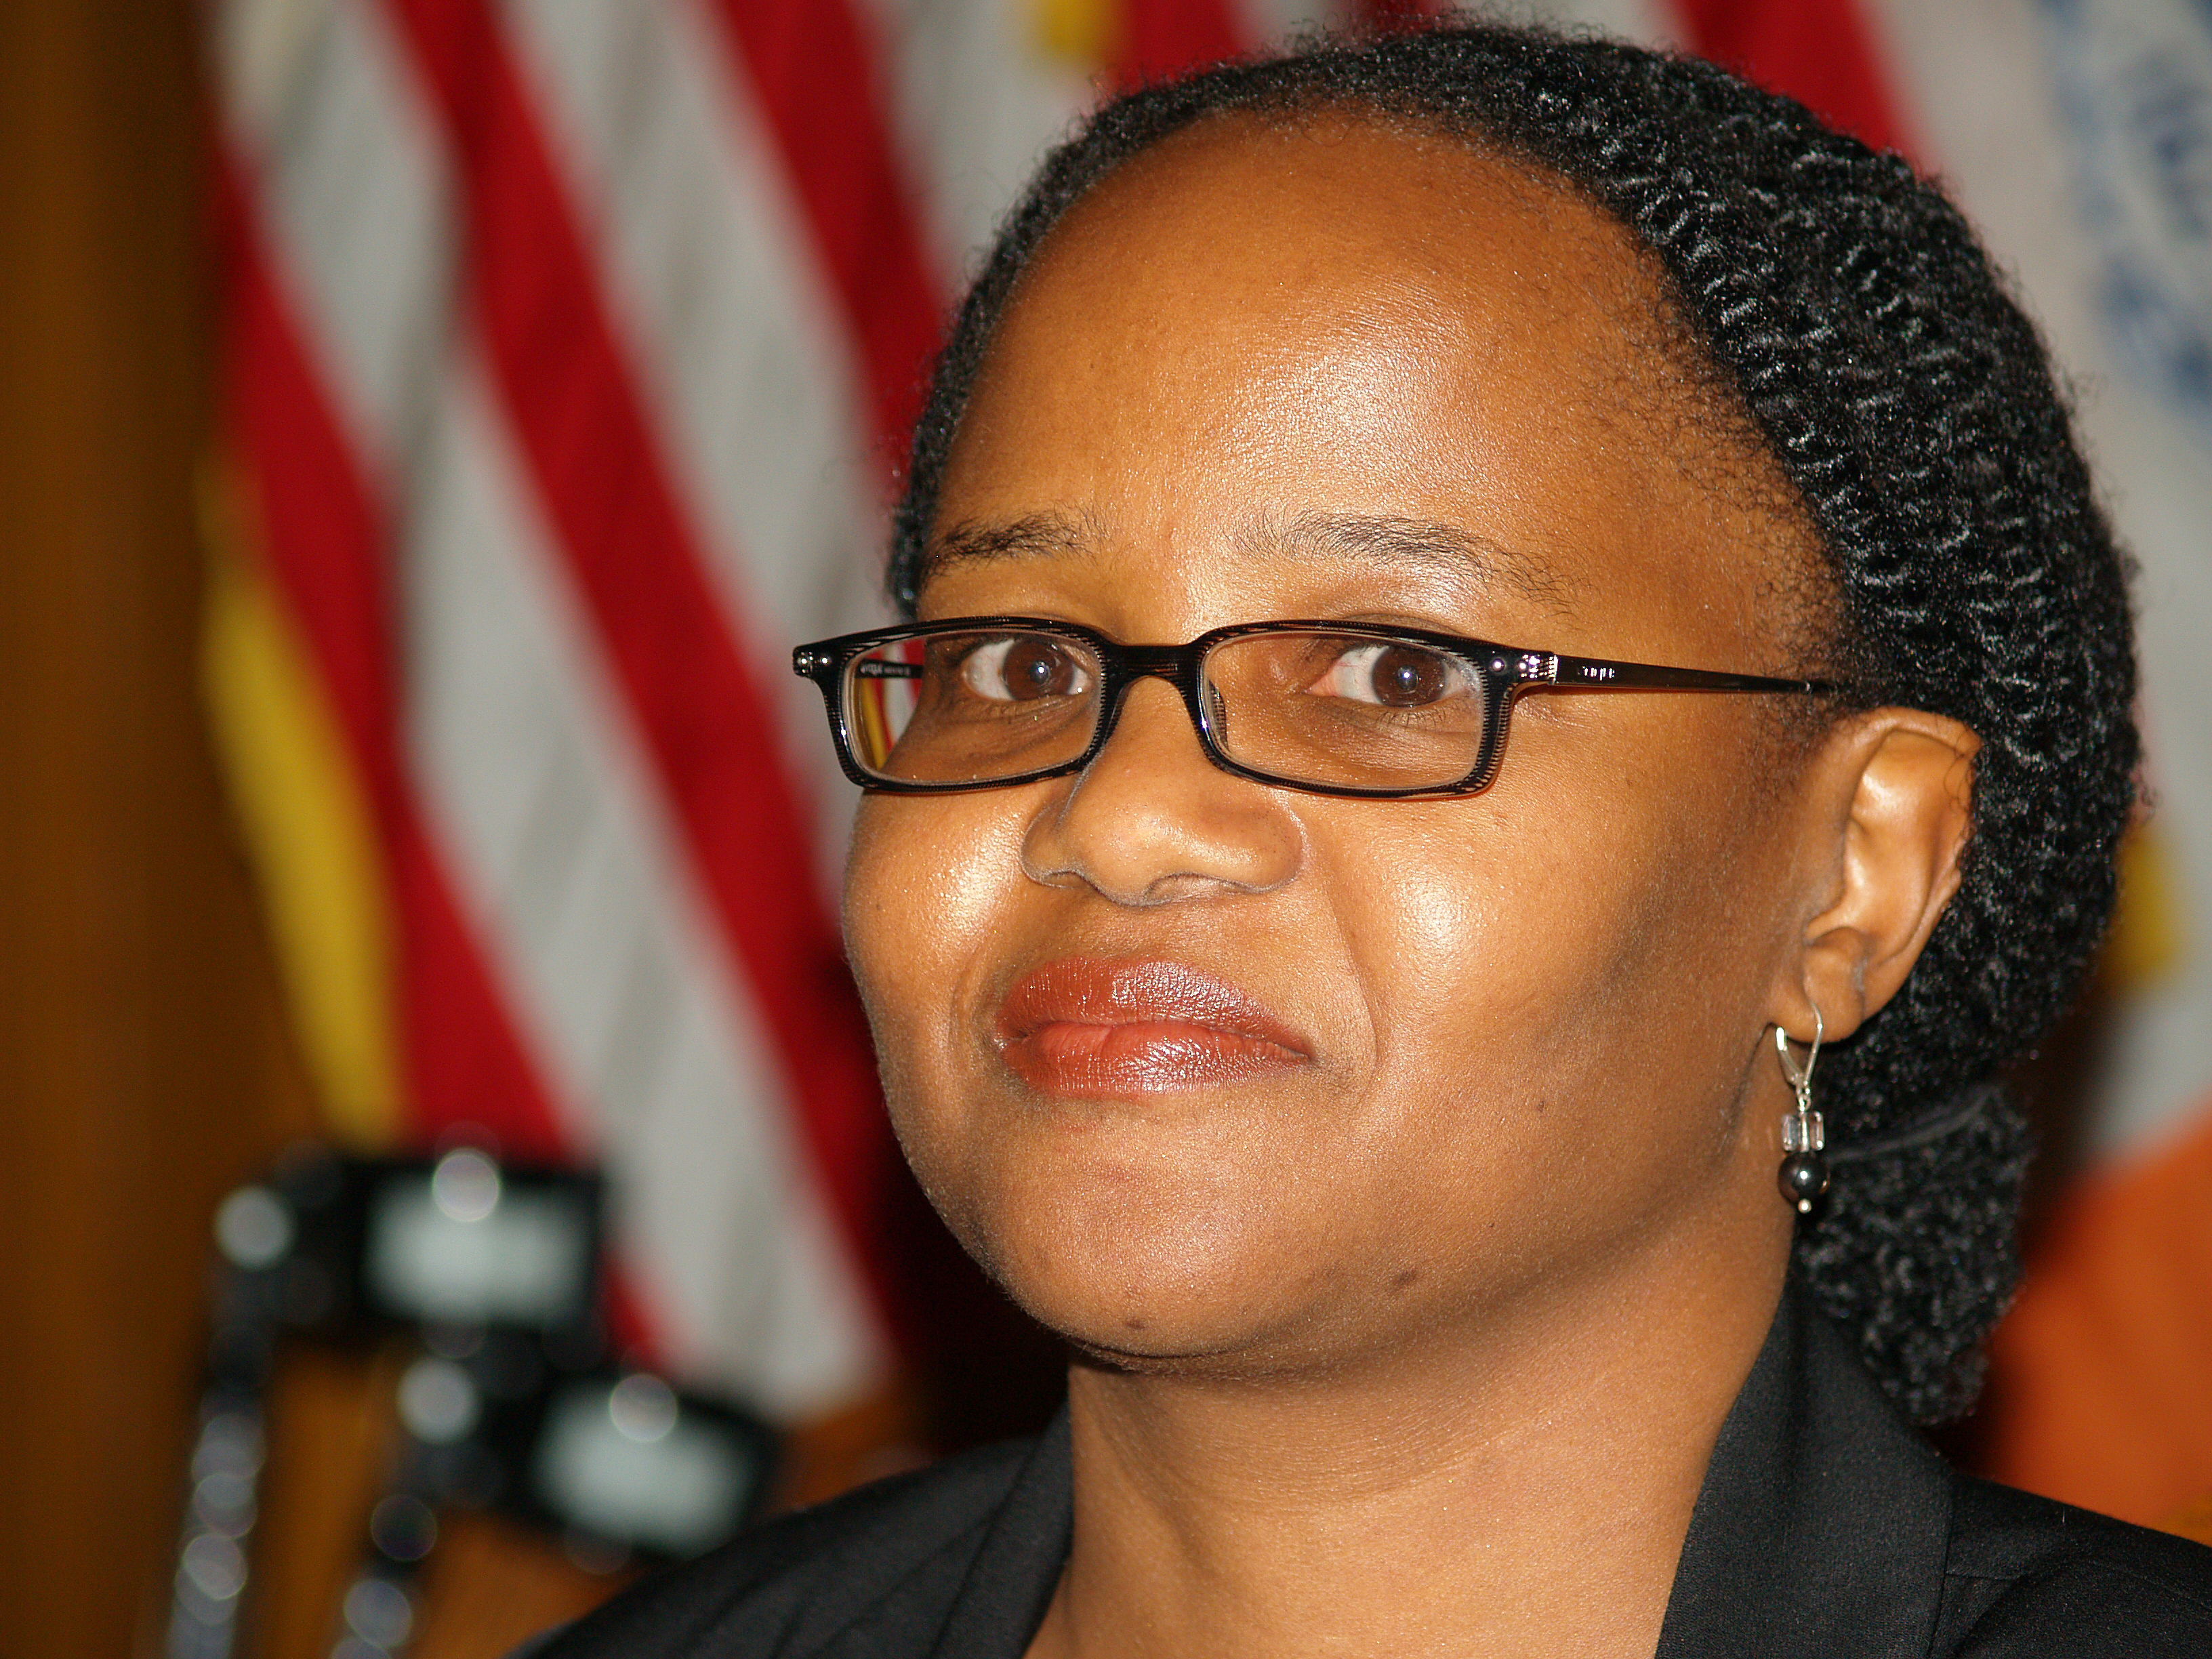 Edwidge Danticat-Photo by David Shankbone courtesy of Wiki Commons